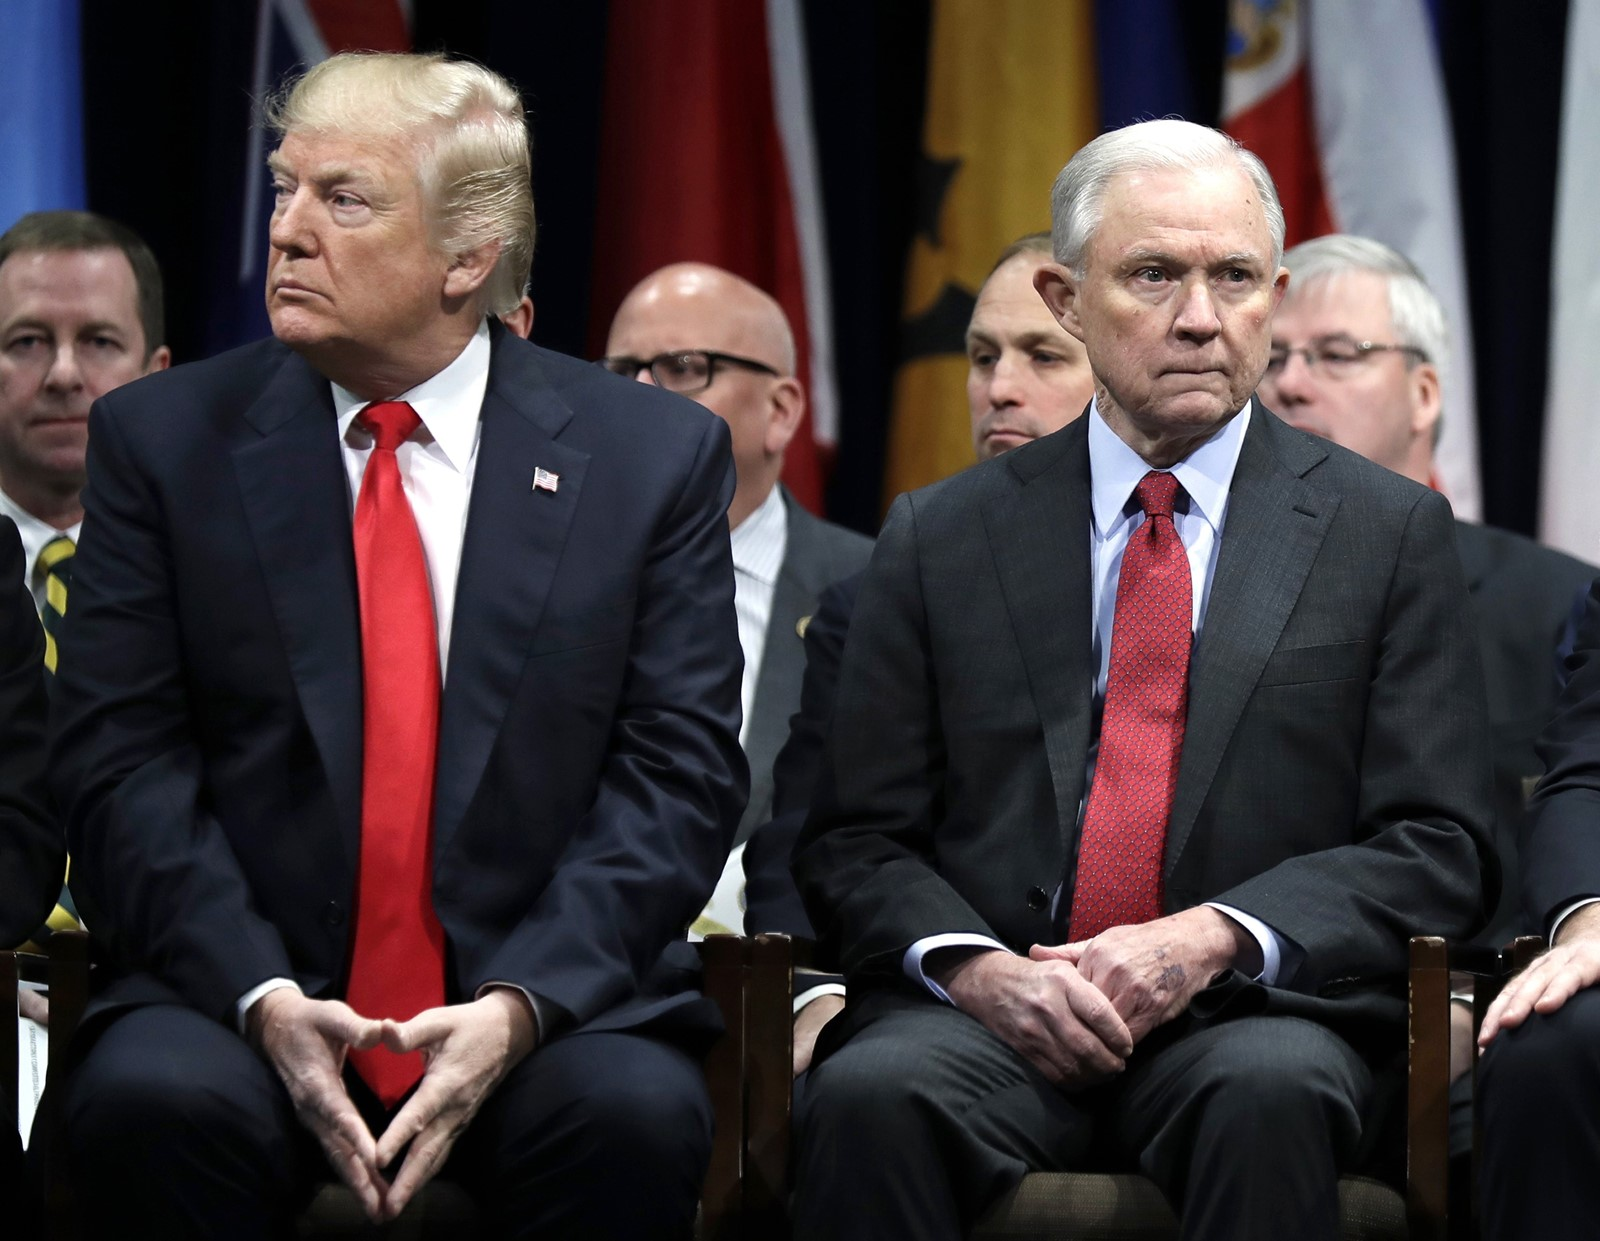 Jeff Sessions was the first sitting senator to endorse Donald J. Trump for president. — Photograph: Evan Vucci/Associated Press.